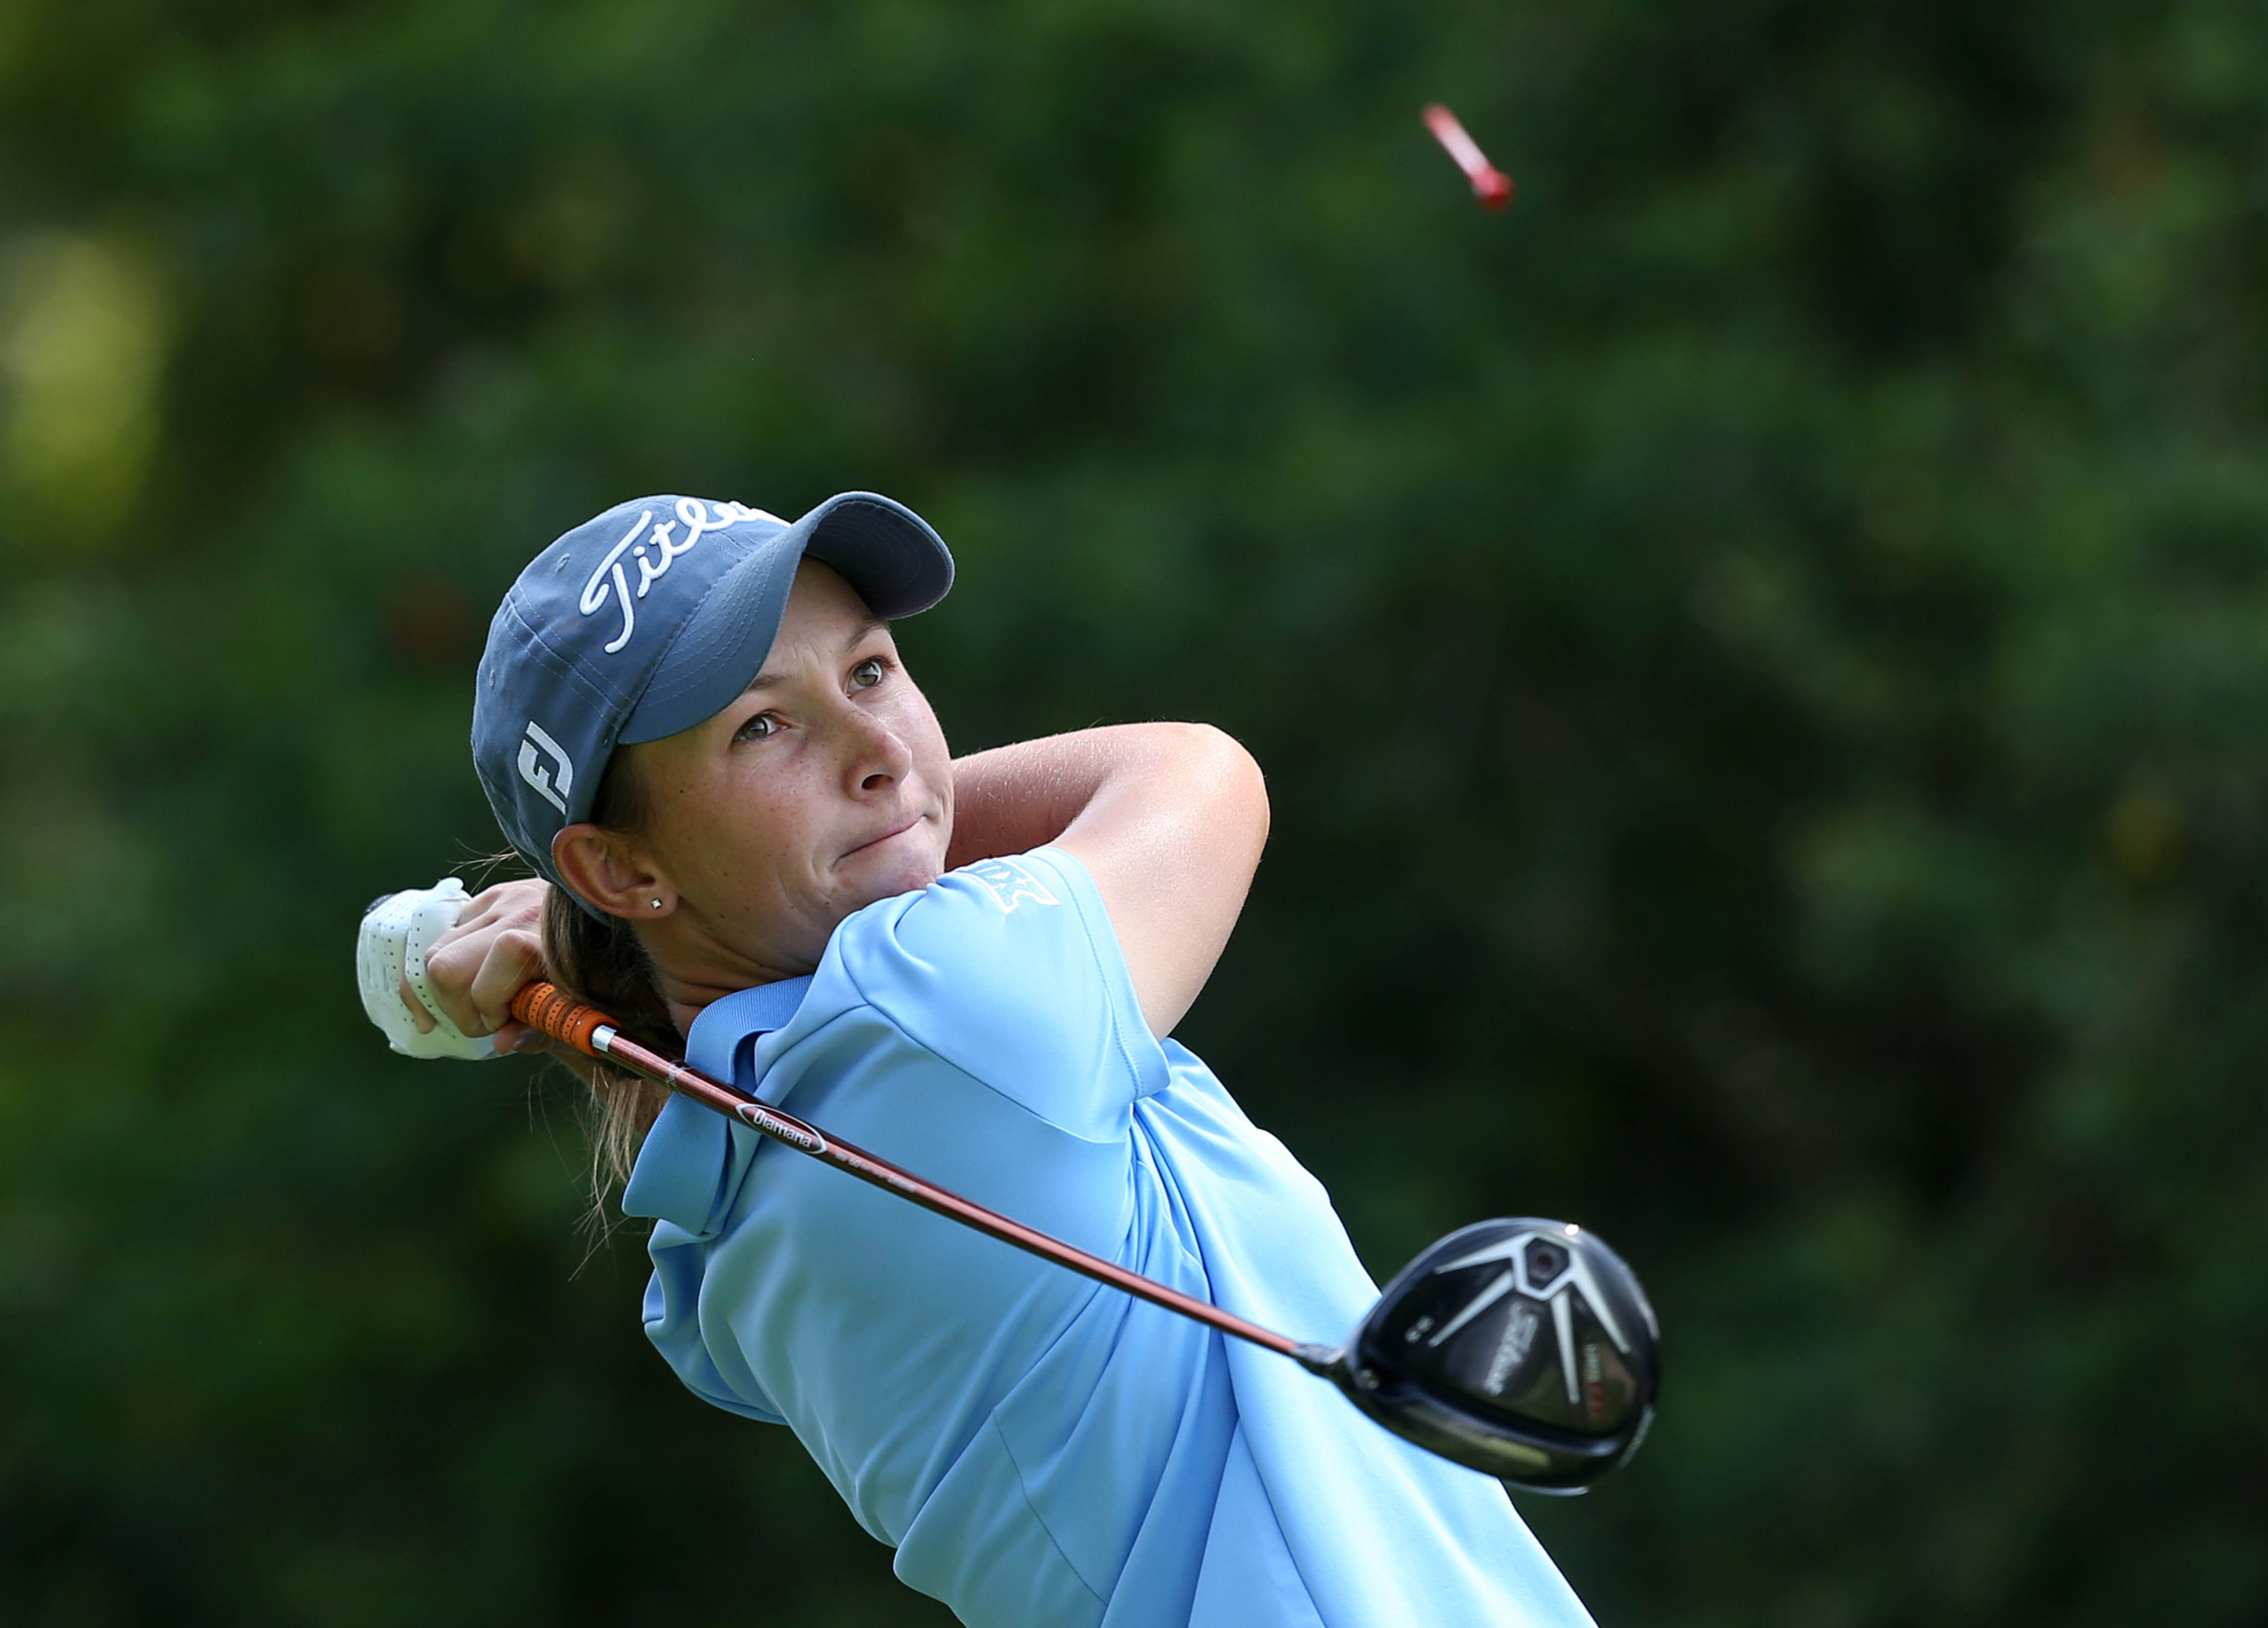 Strauss stays strong to lead Joburg Open